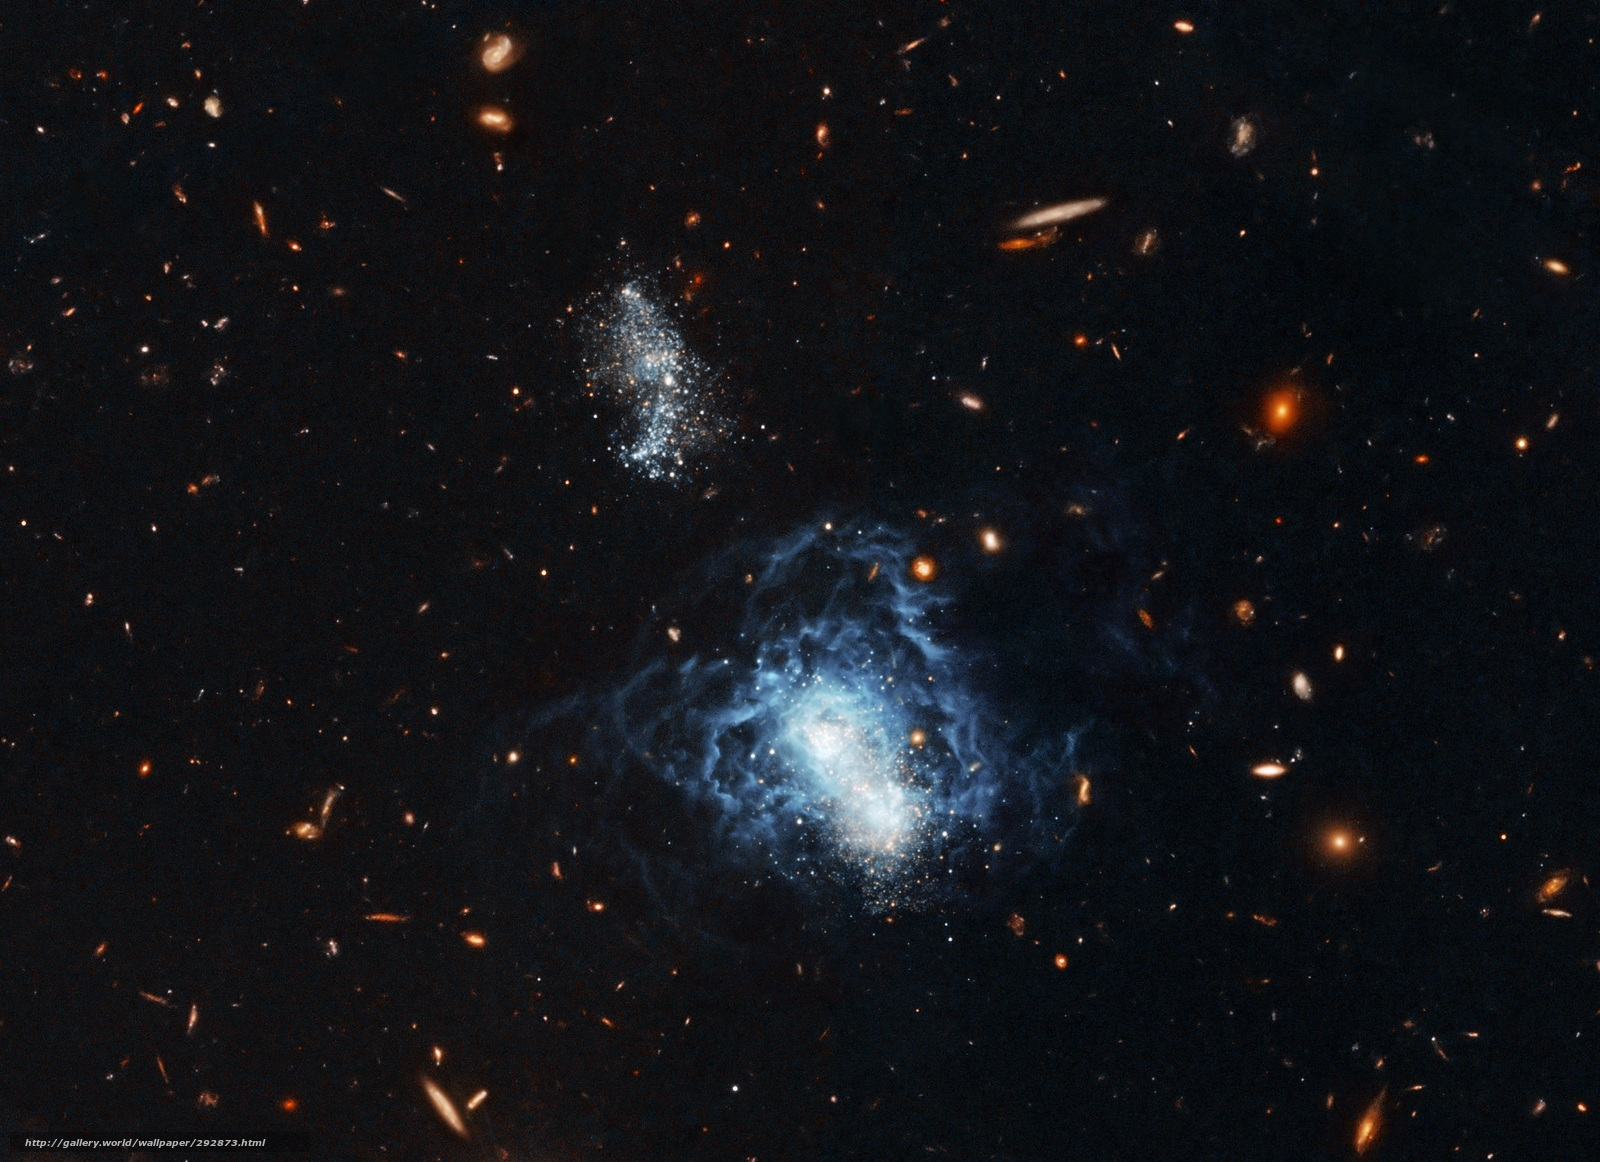 irregular galaxies hd - photo #18